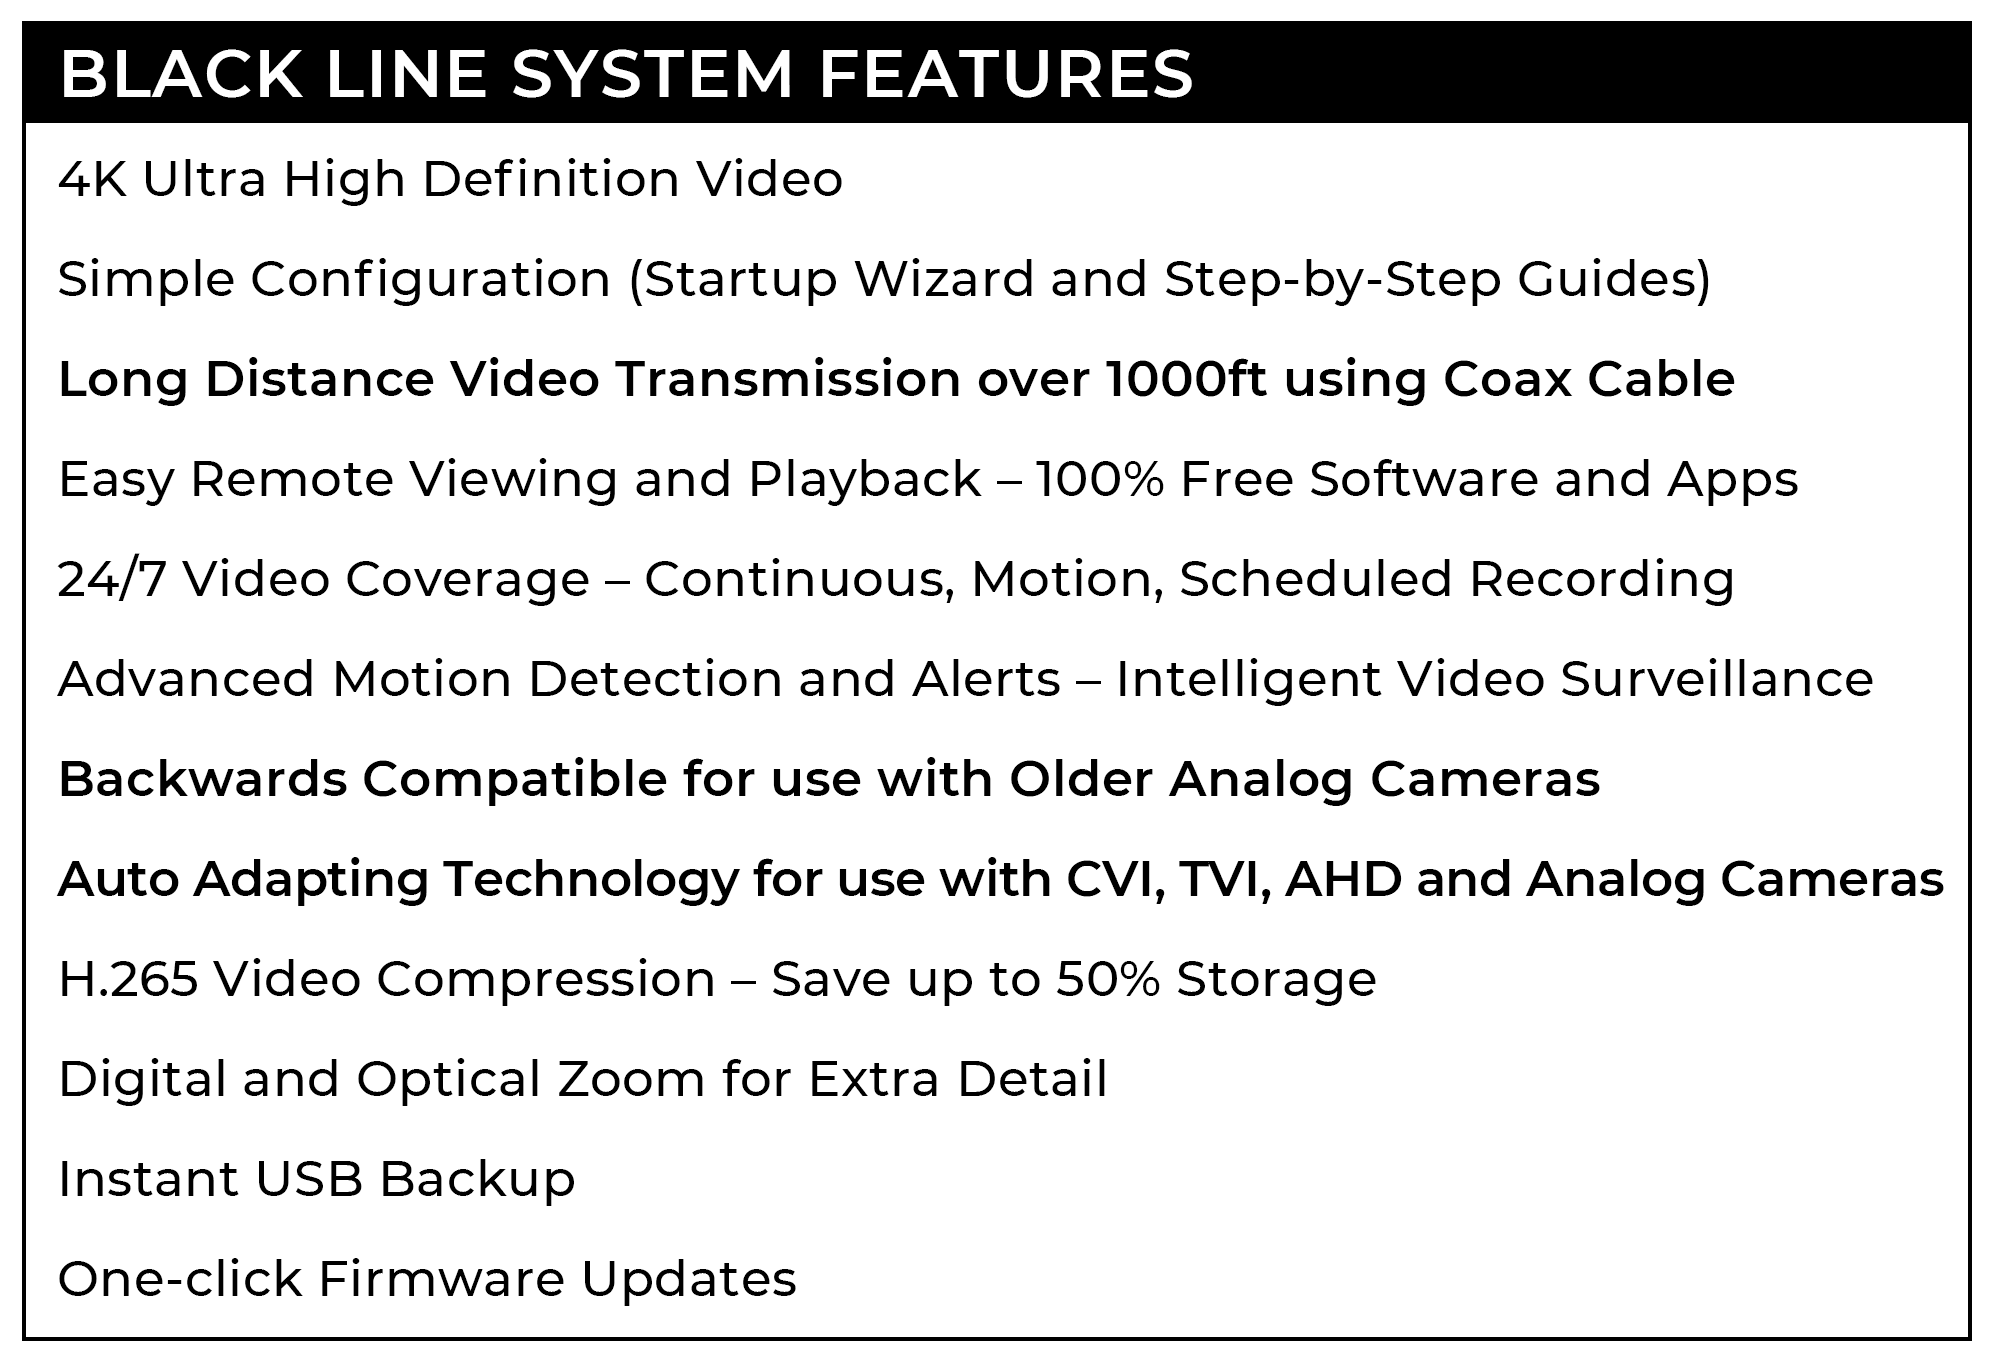 black-line-system-features-1-.png